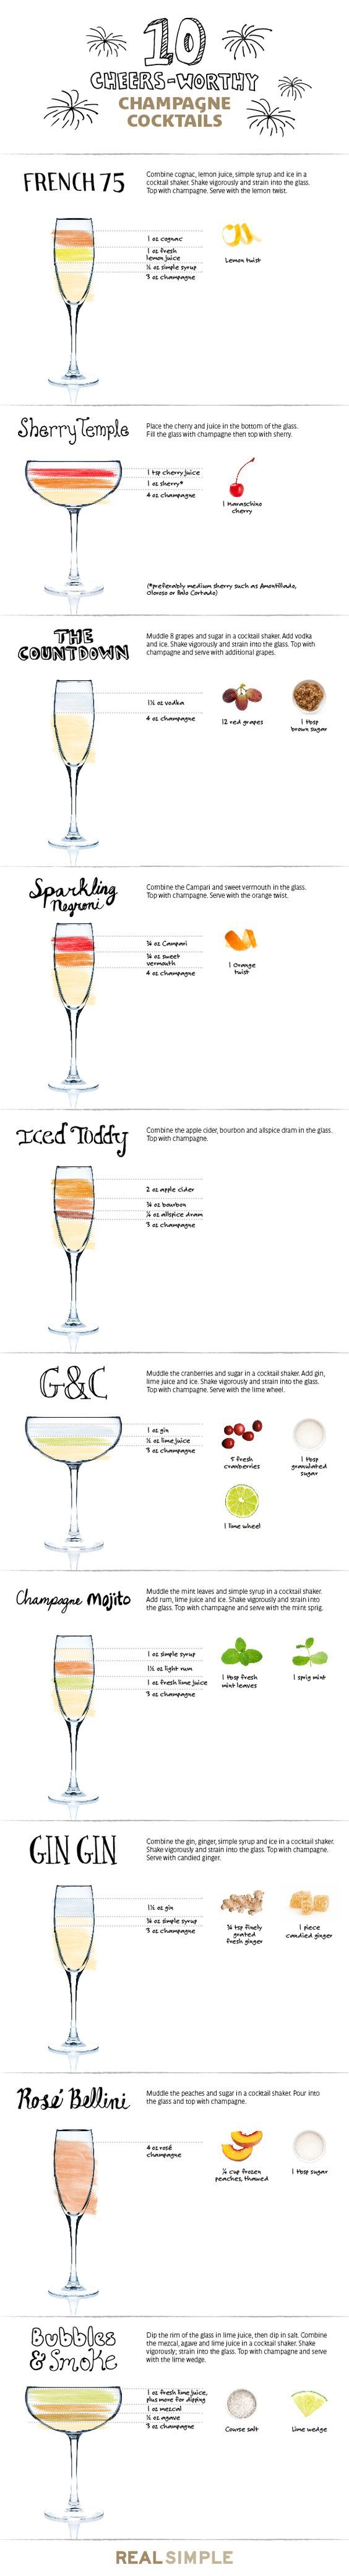 Need last-minute cocktail ideas for you New Year's party tonight? These champagne drinks will have everyone cheering!